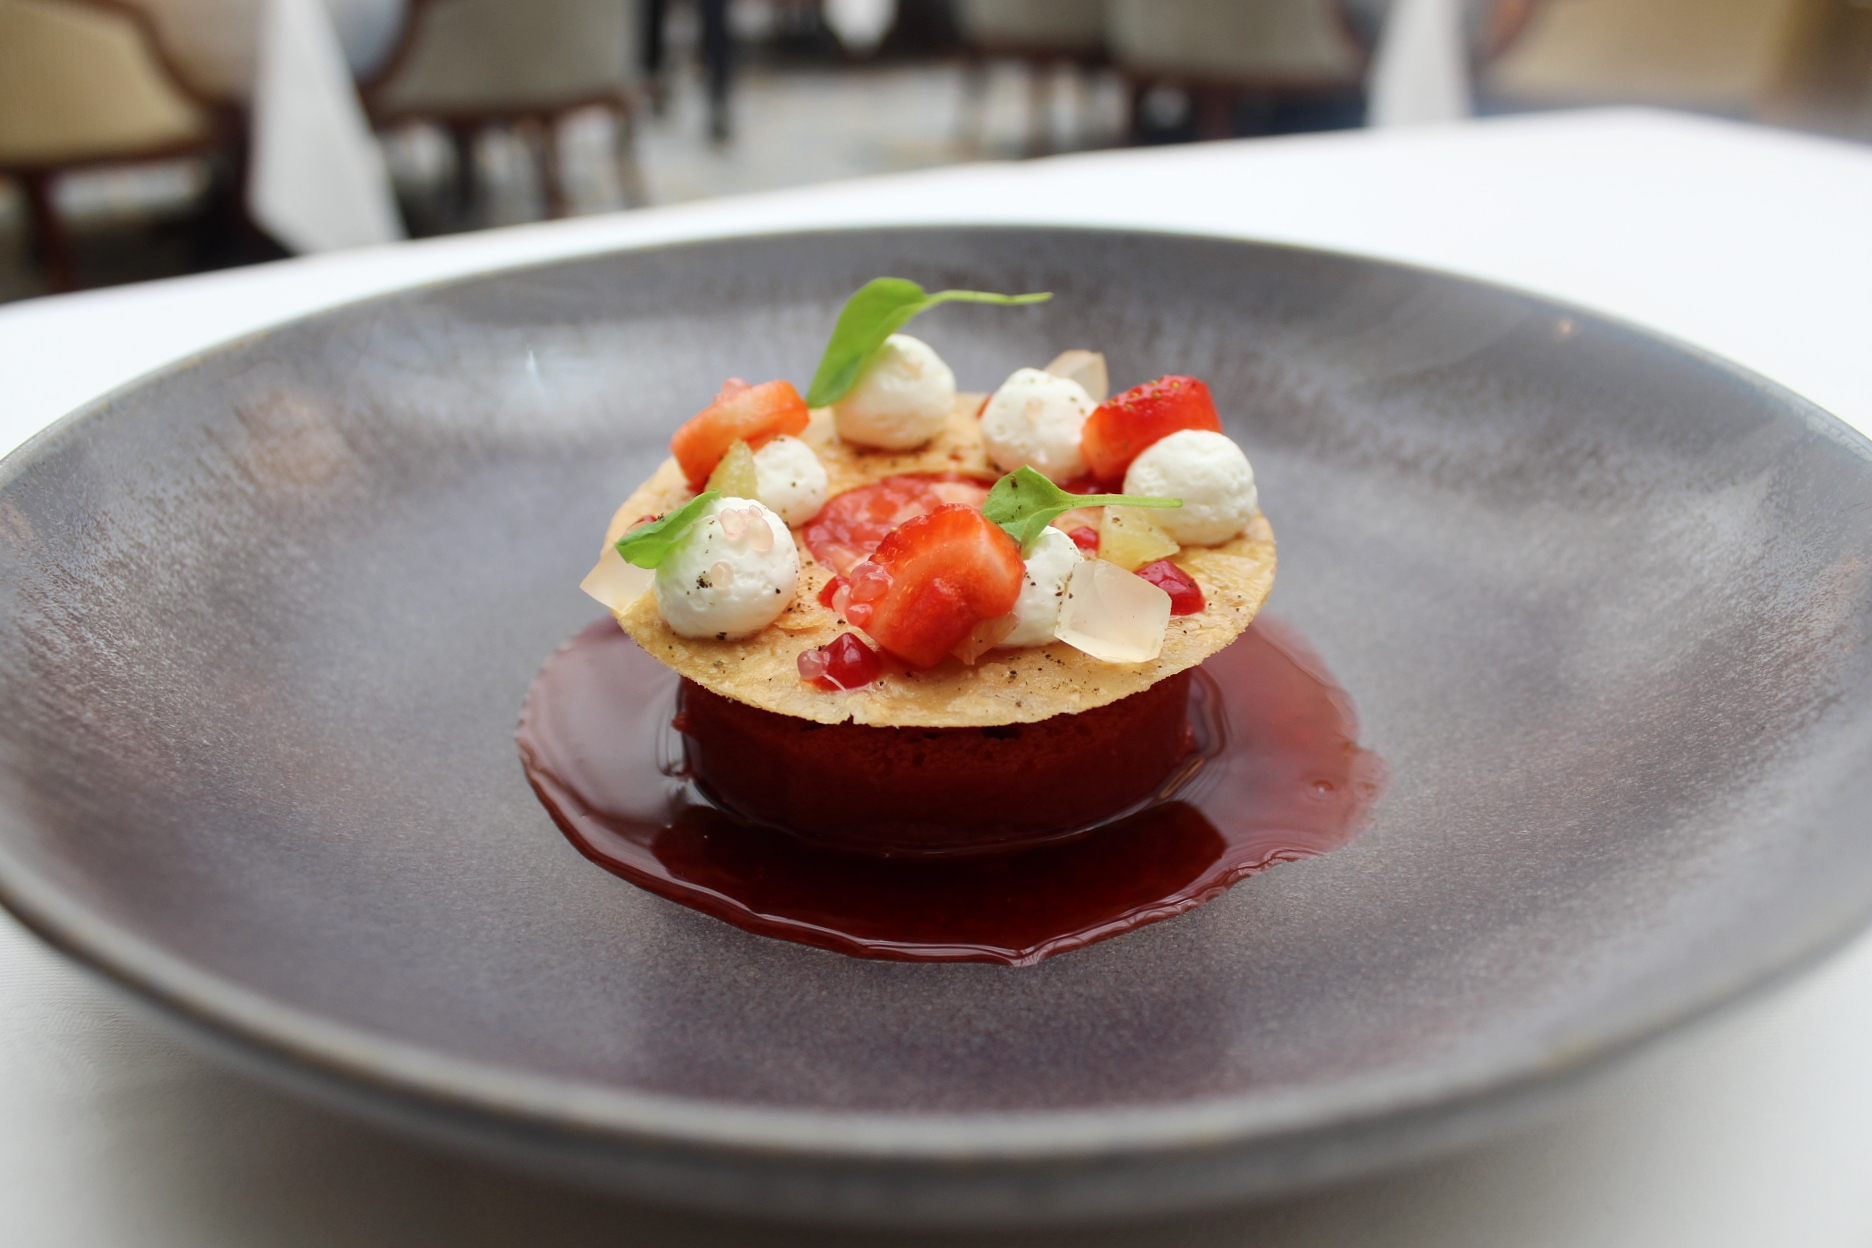 strawberry dessert at Celeste at the lanesborough hotel london